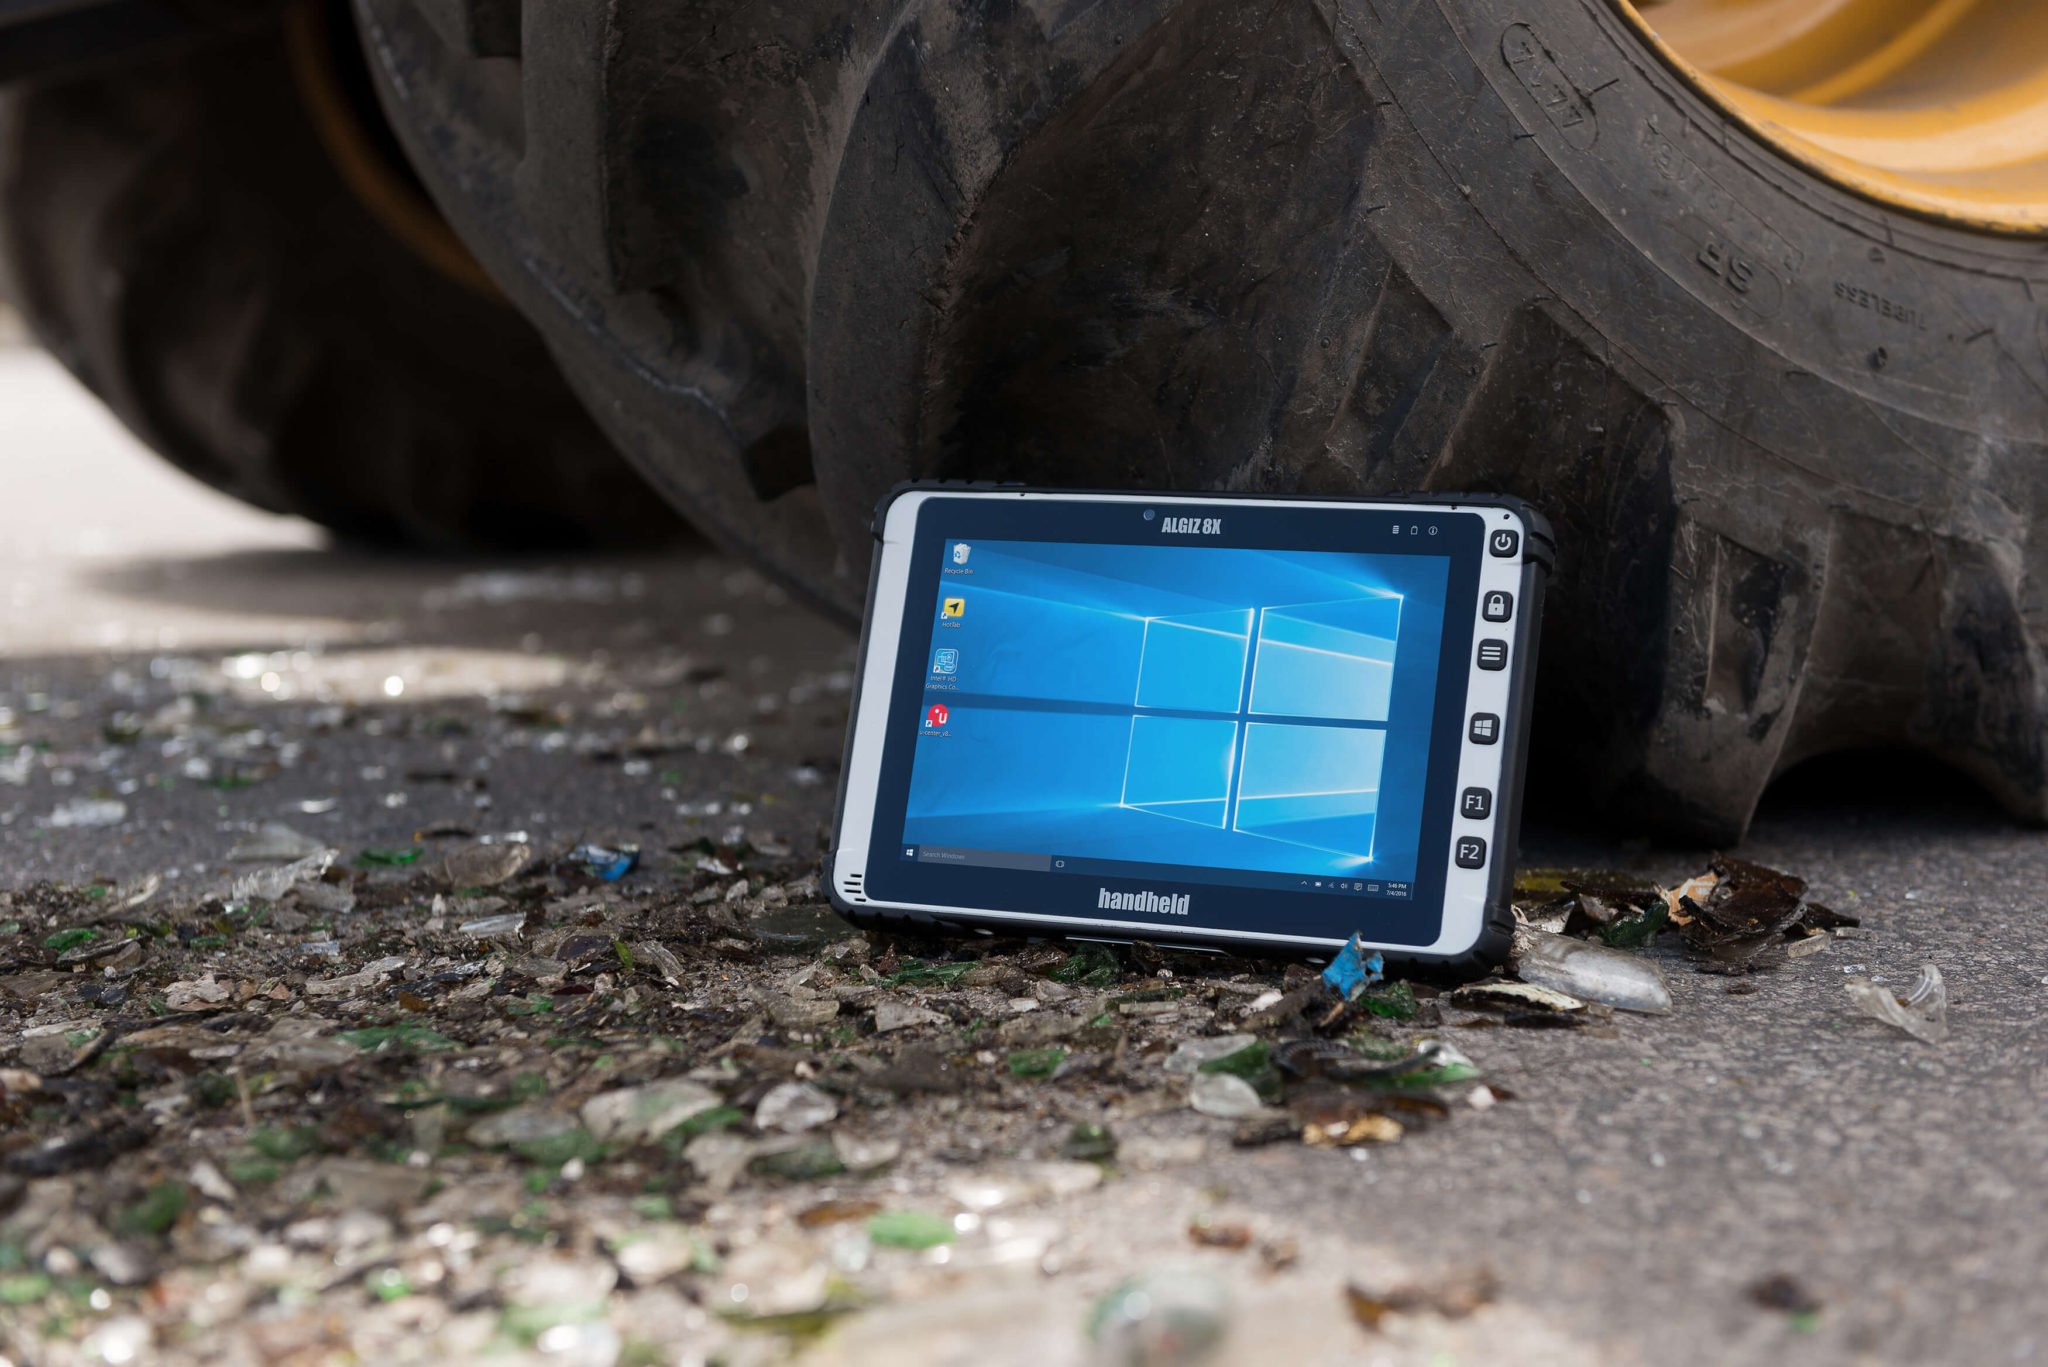 Algiz-8X-rugged-capacitive-touchscreen-tablet(1)